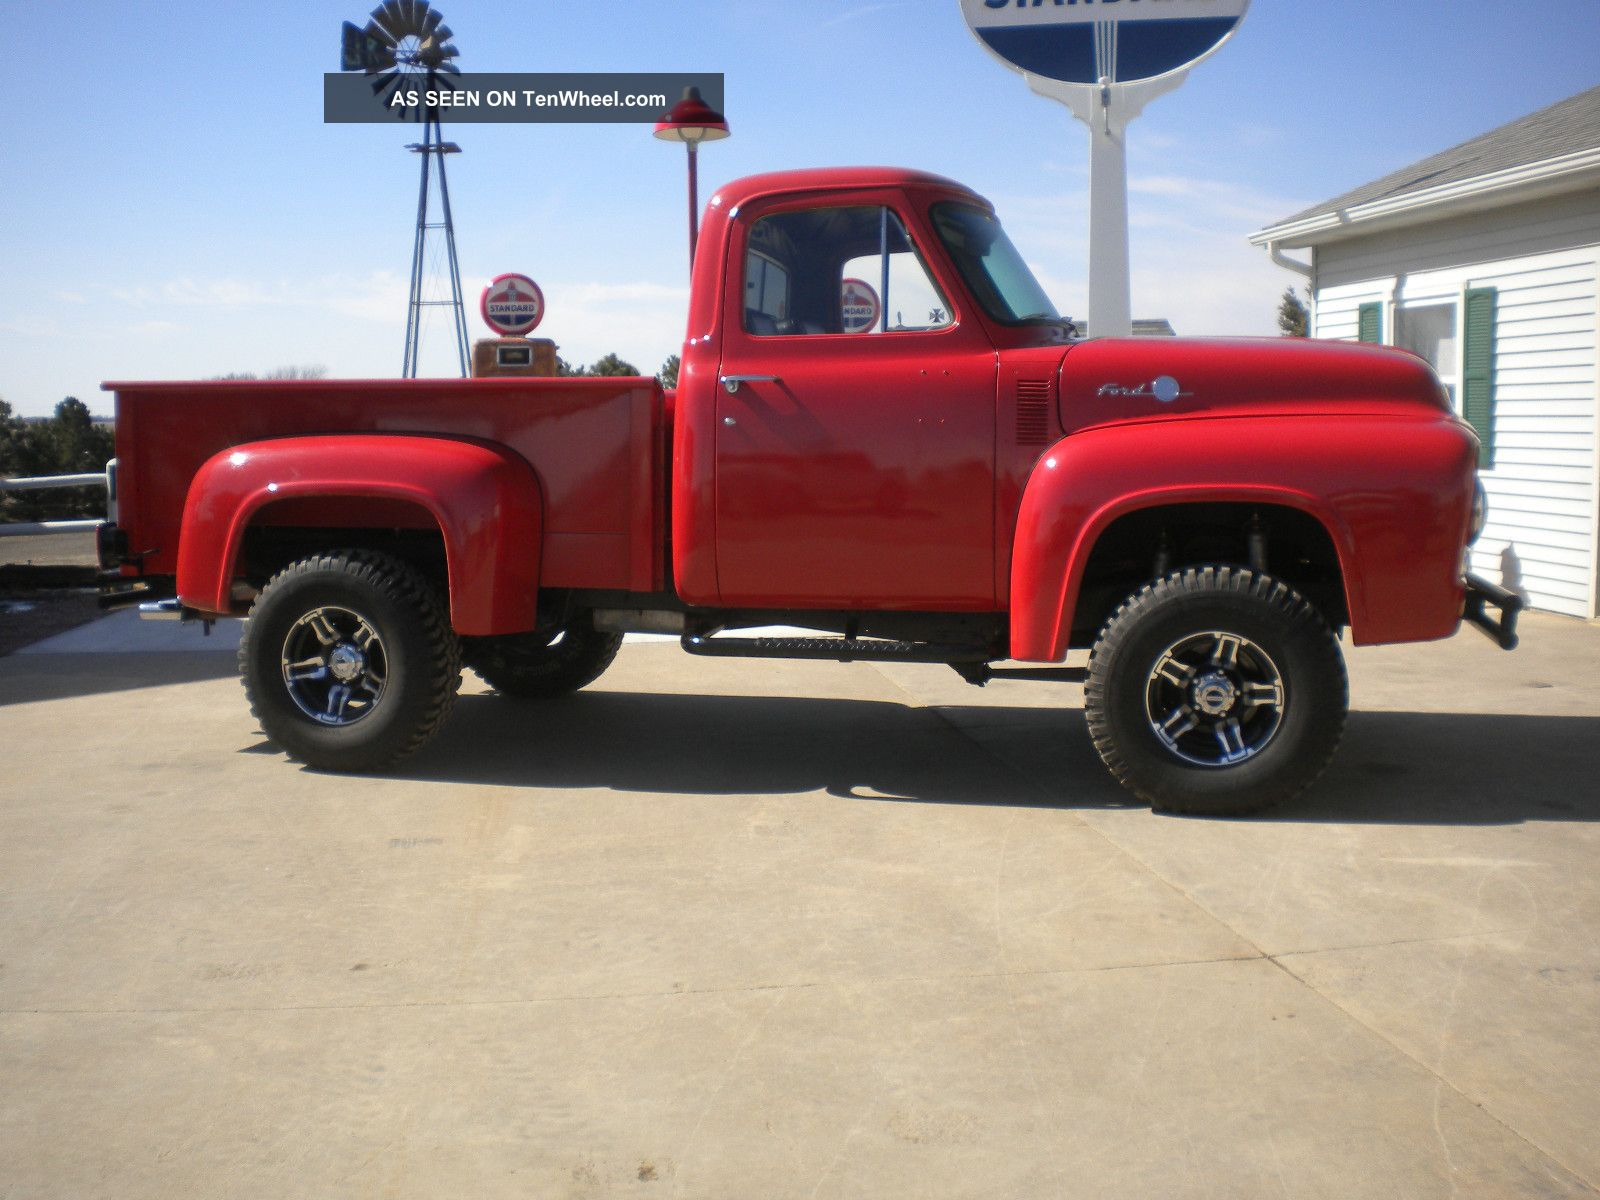 1955 Ford F100 4x4 Custom Truck Hot Rod Rat Lifted Pickup V Eight 400